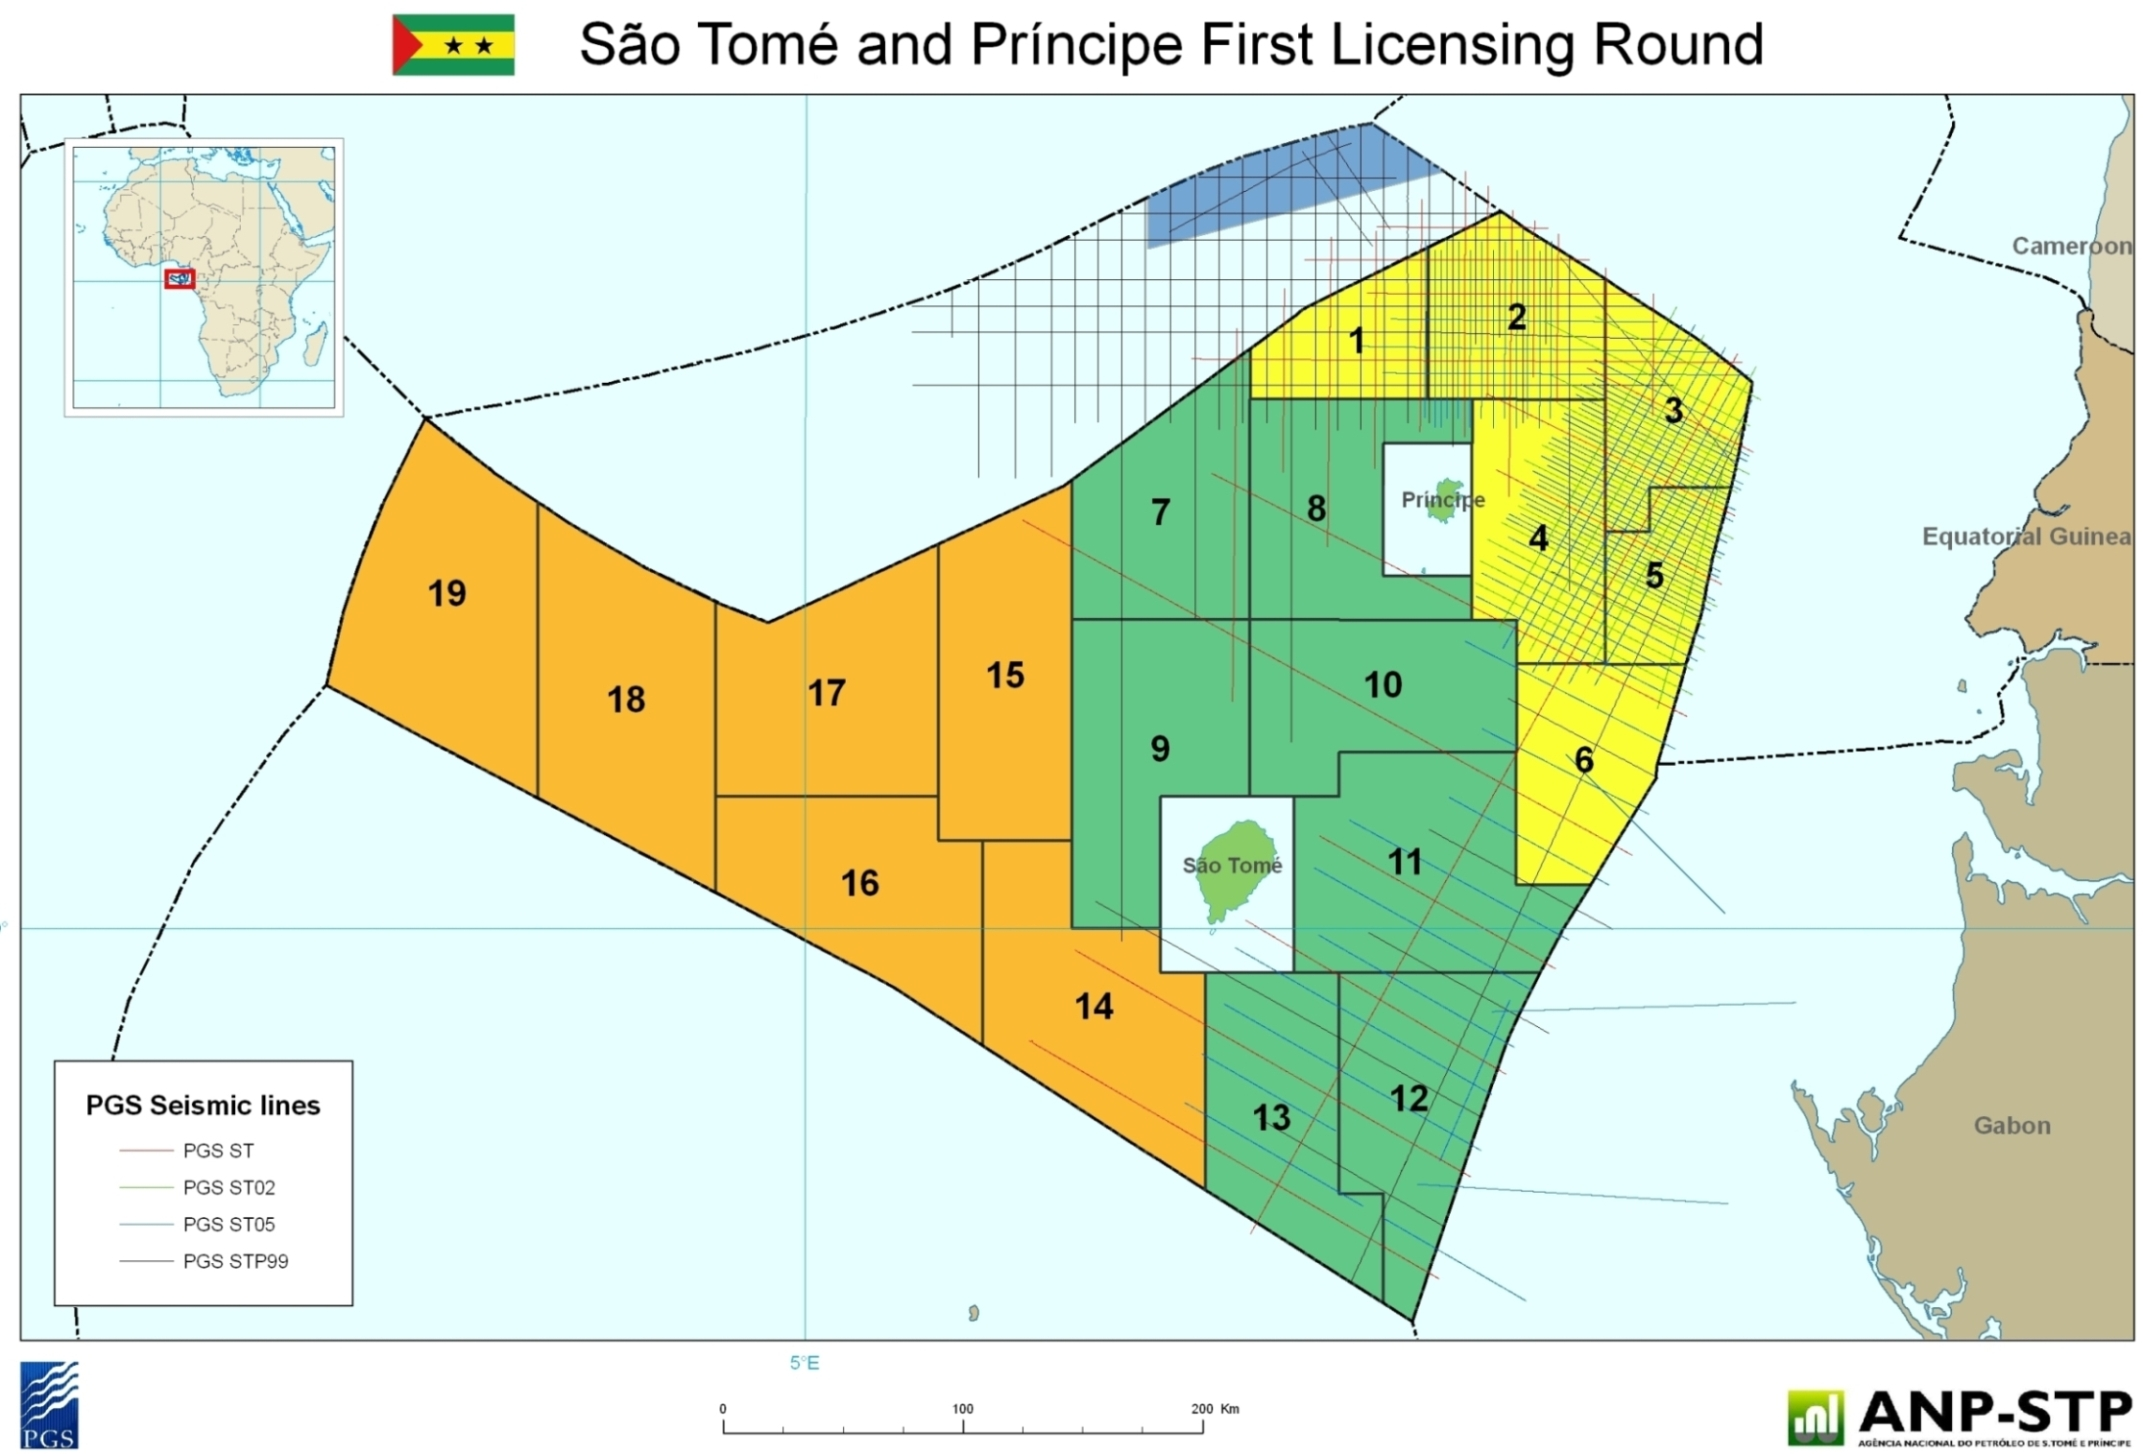 Sao Tome & Principe Exclusive Economic Zone